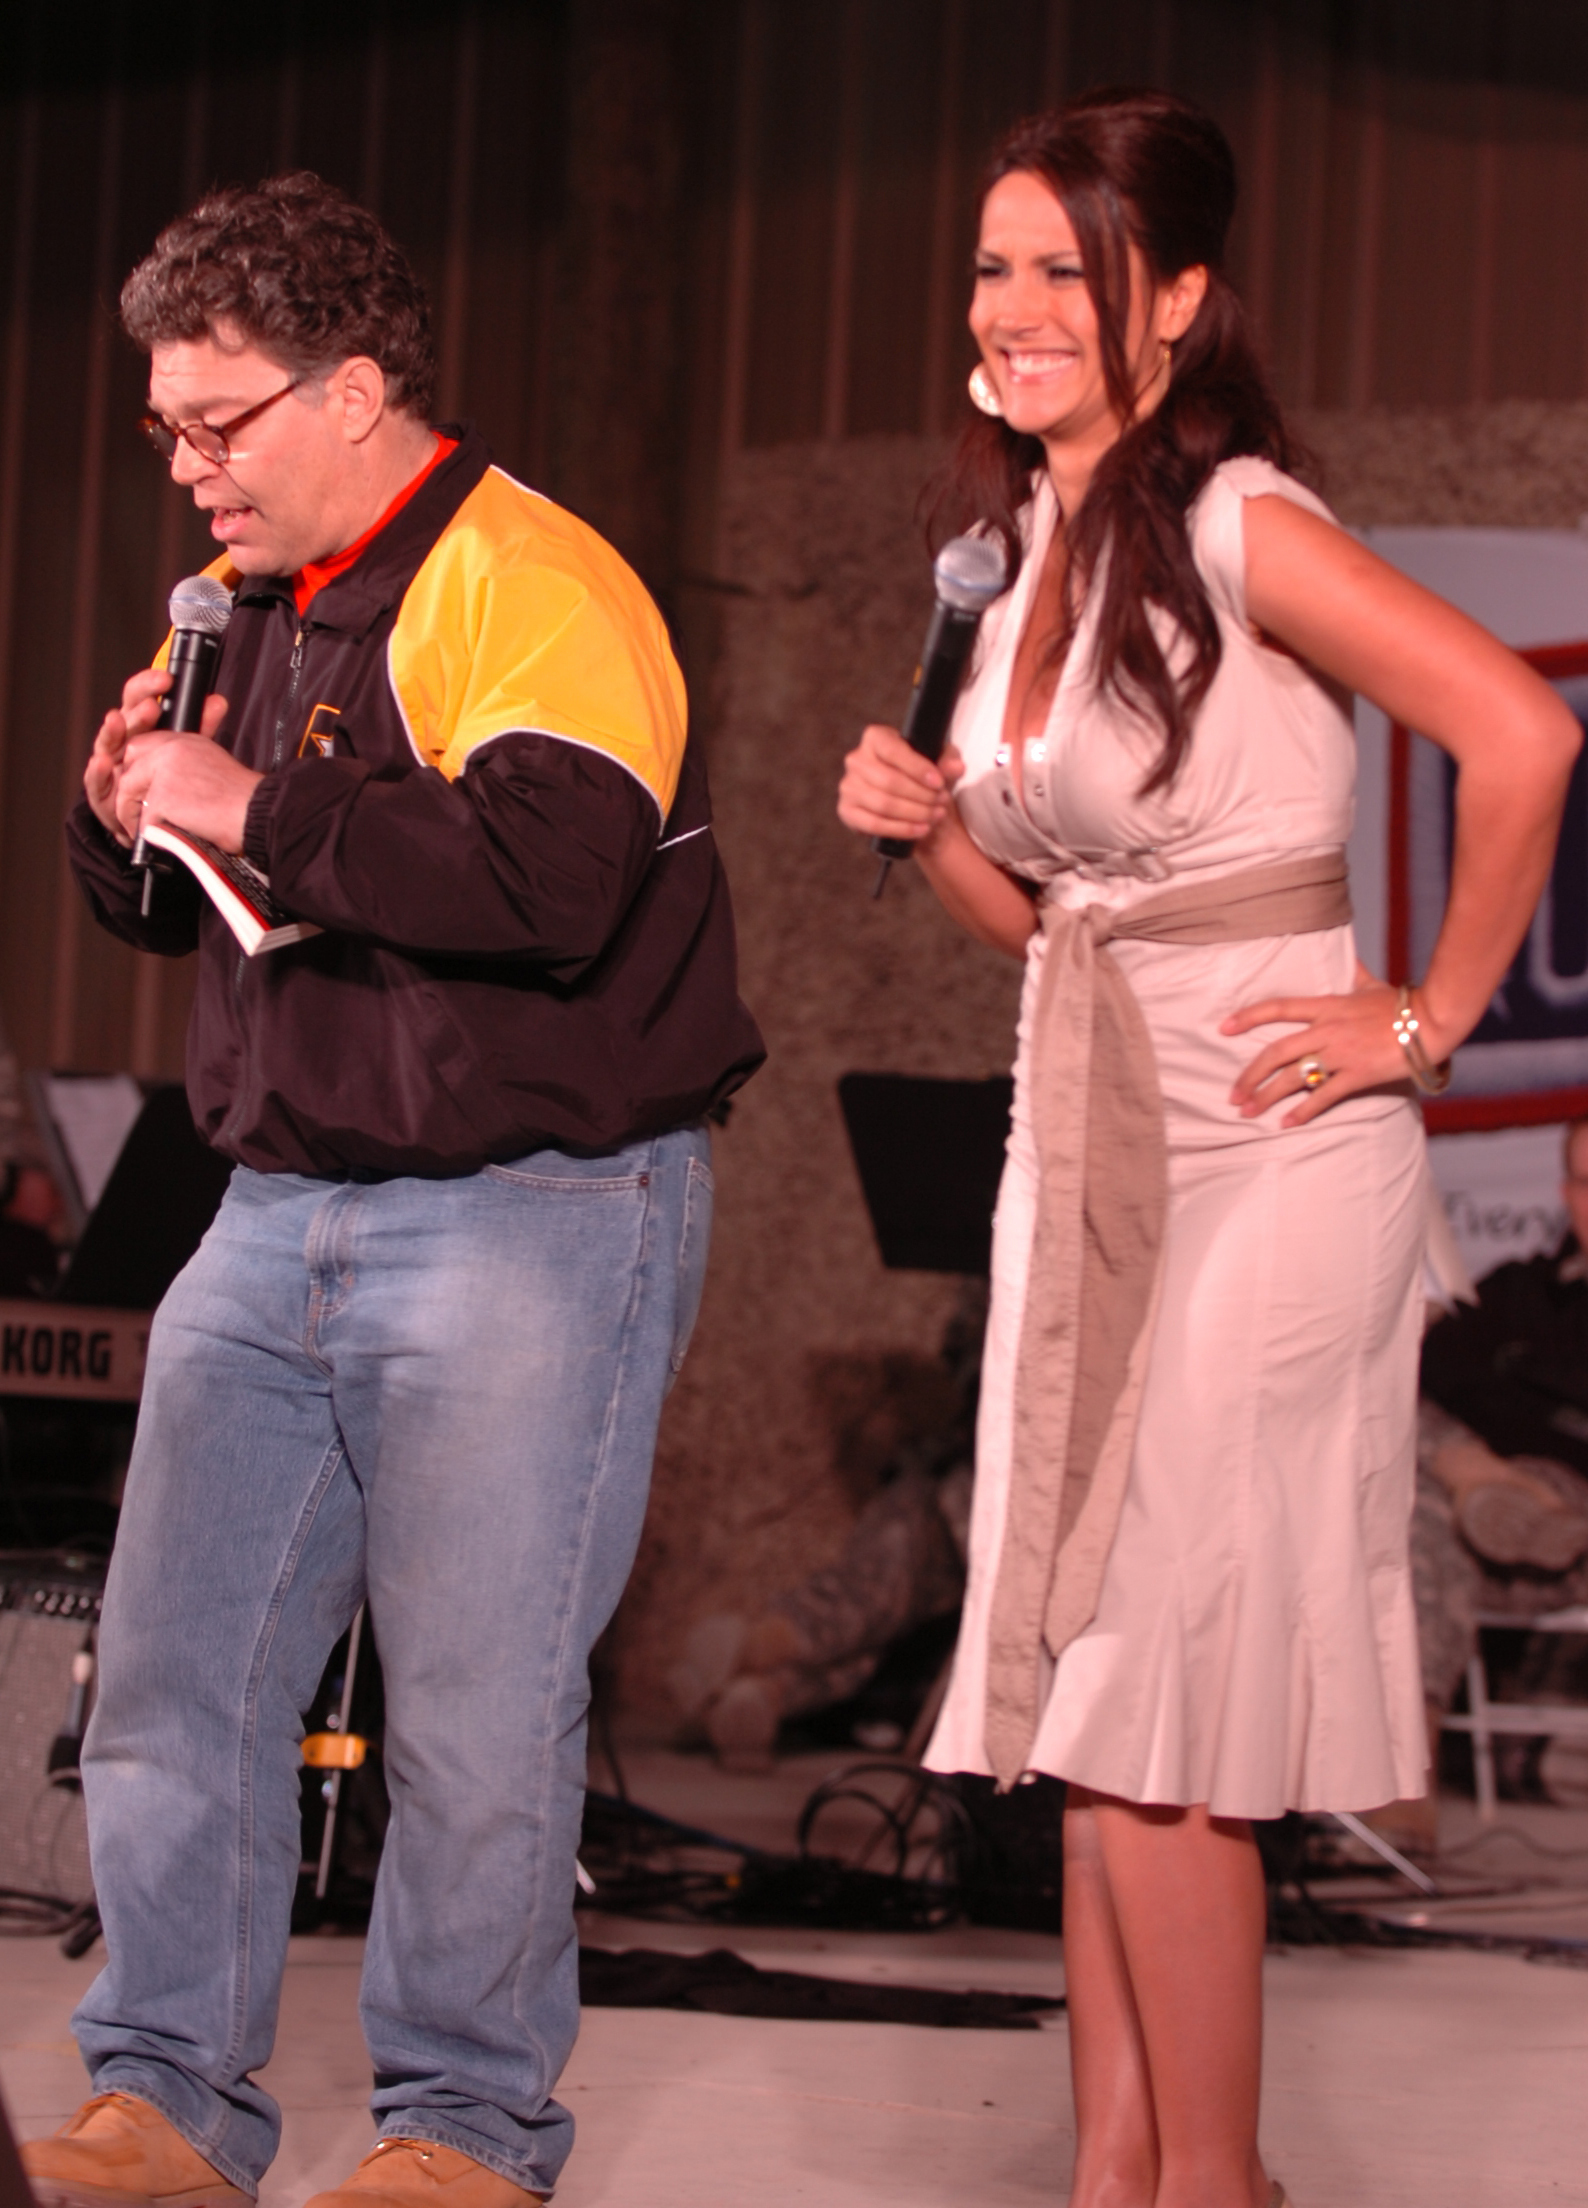 CAMP ARIFJAN,KUWAIT - DECEMBER 15: In this handout photofrom 2006  provided by the US Army, Comedian Al Franken and sports commentator Leeann Tweeden perform a comic skit on camp Thursday in front of more than 2,000 elated servicemembers during the USO Sergeant Major of the Army's 2006 Hope and Freedom Tour. Franken and Tweeden are touring with country music singers, Darryl Worley, Mark Wills, Keni Thomas, hip-hop artists (Phot by Patrick Moes/US Army via Getty Images)